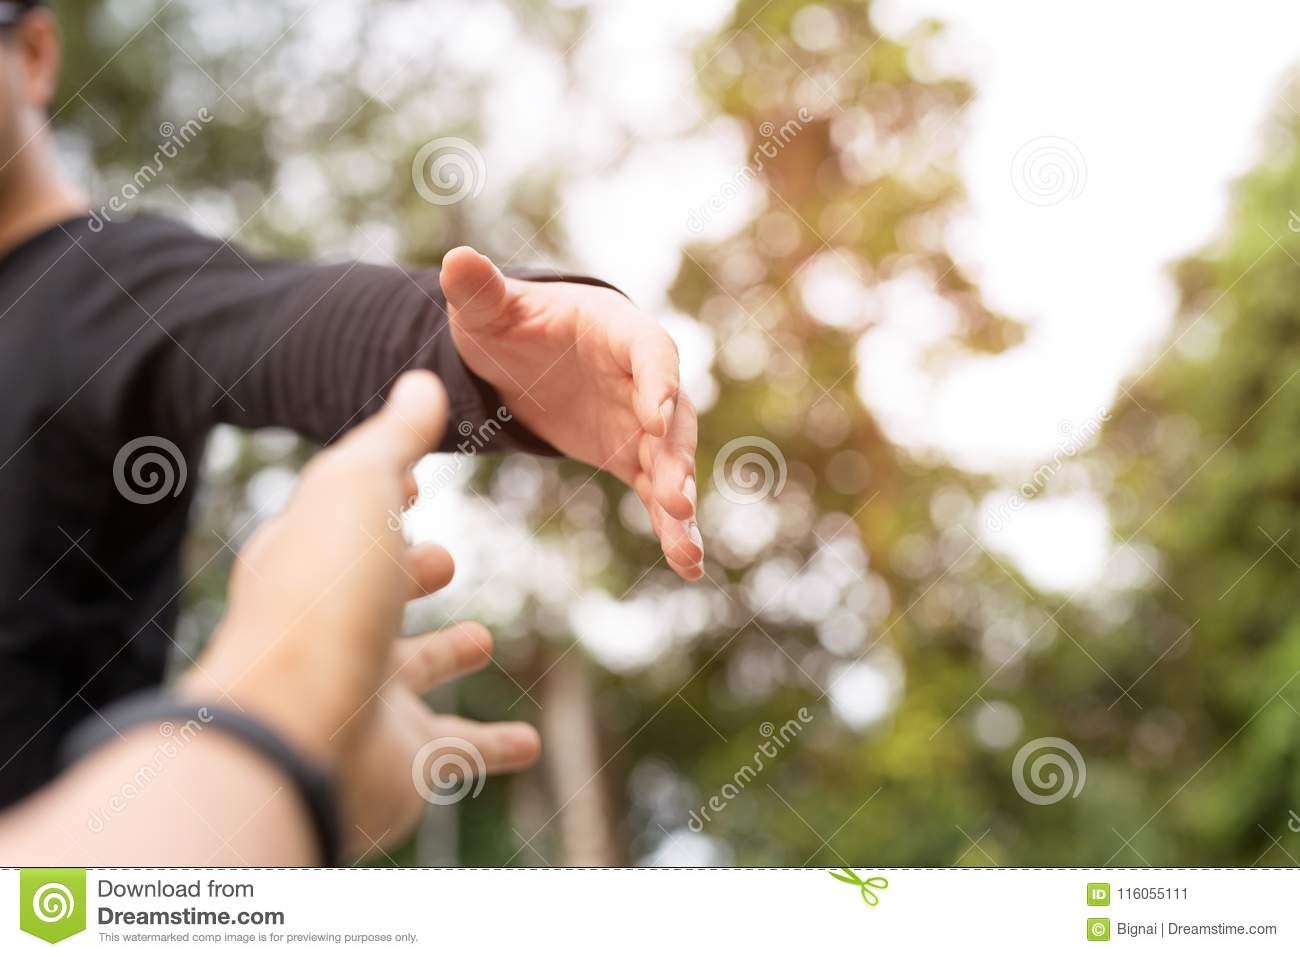 Help Concept Hands reaching out to help each other